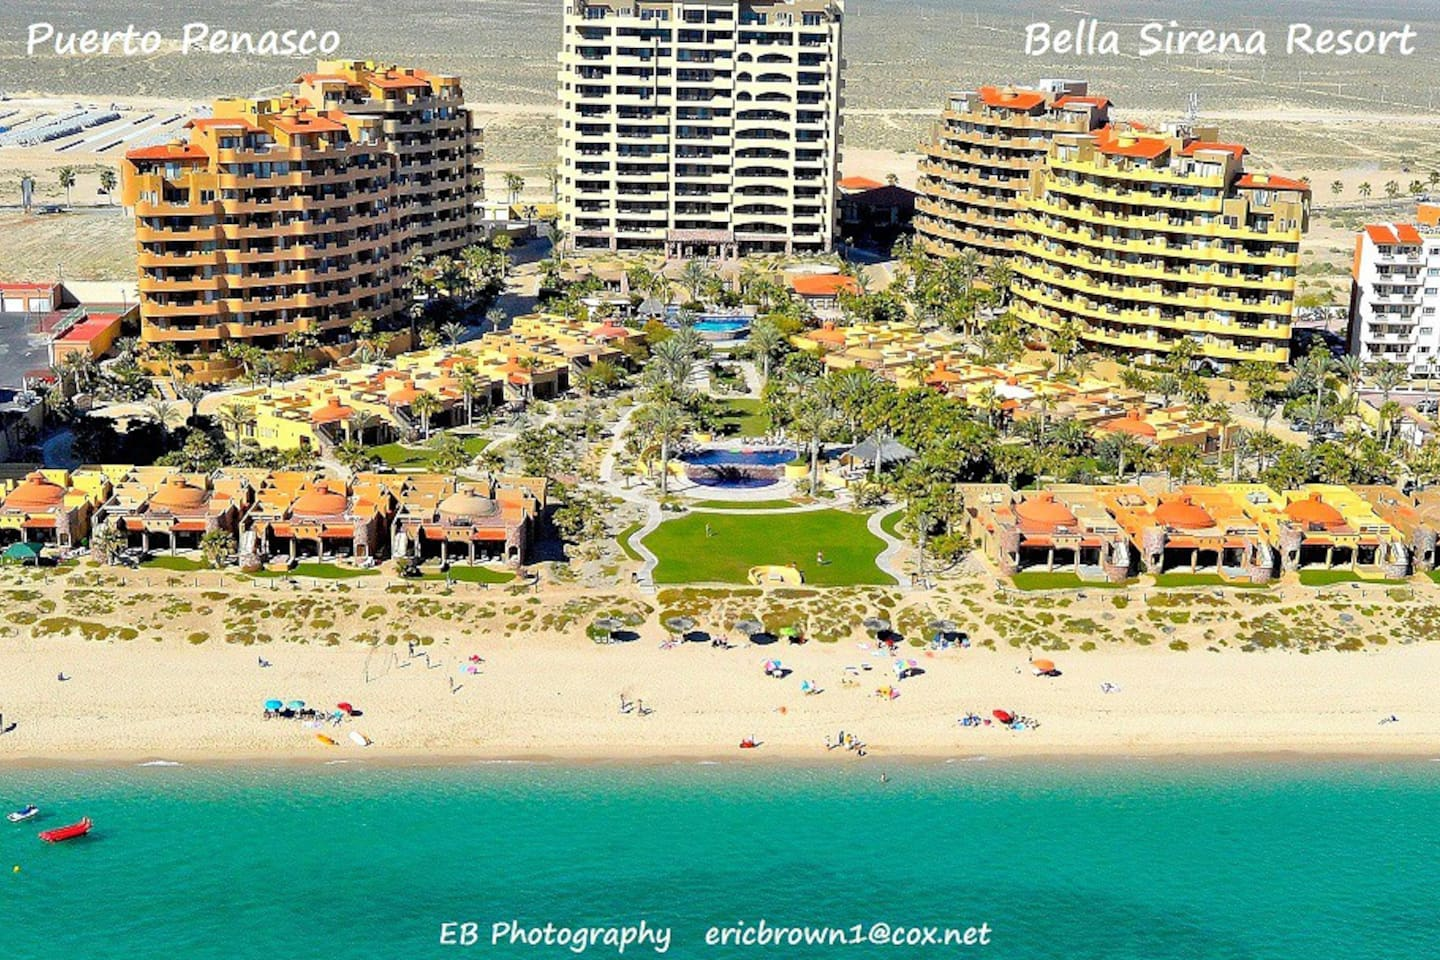 Upscale Beachfront Resort - the most amenities in the entire town...Luxury!